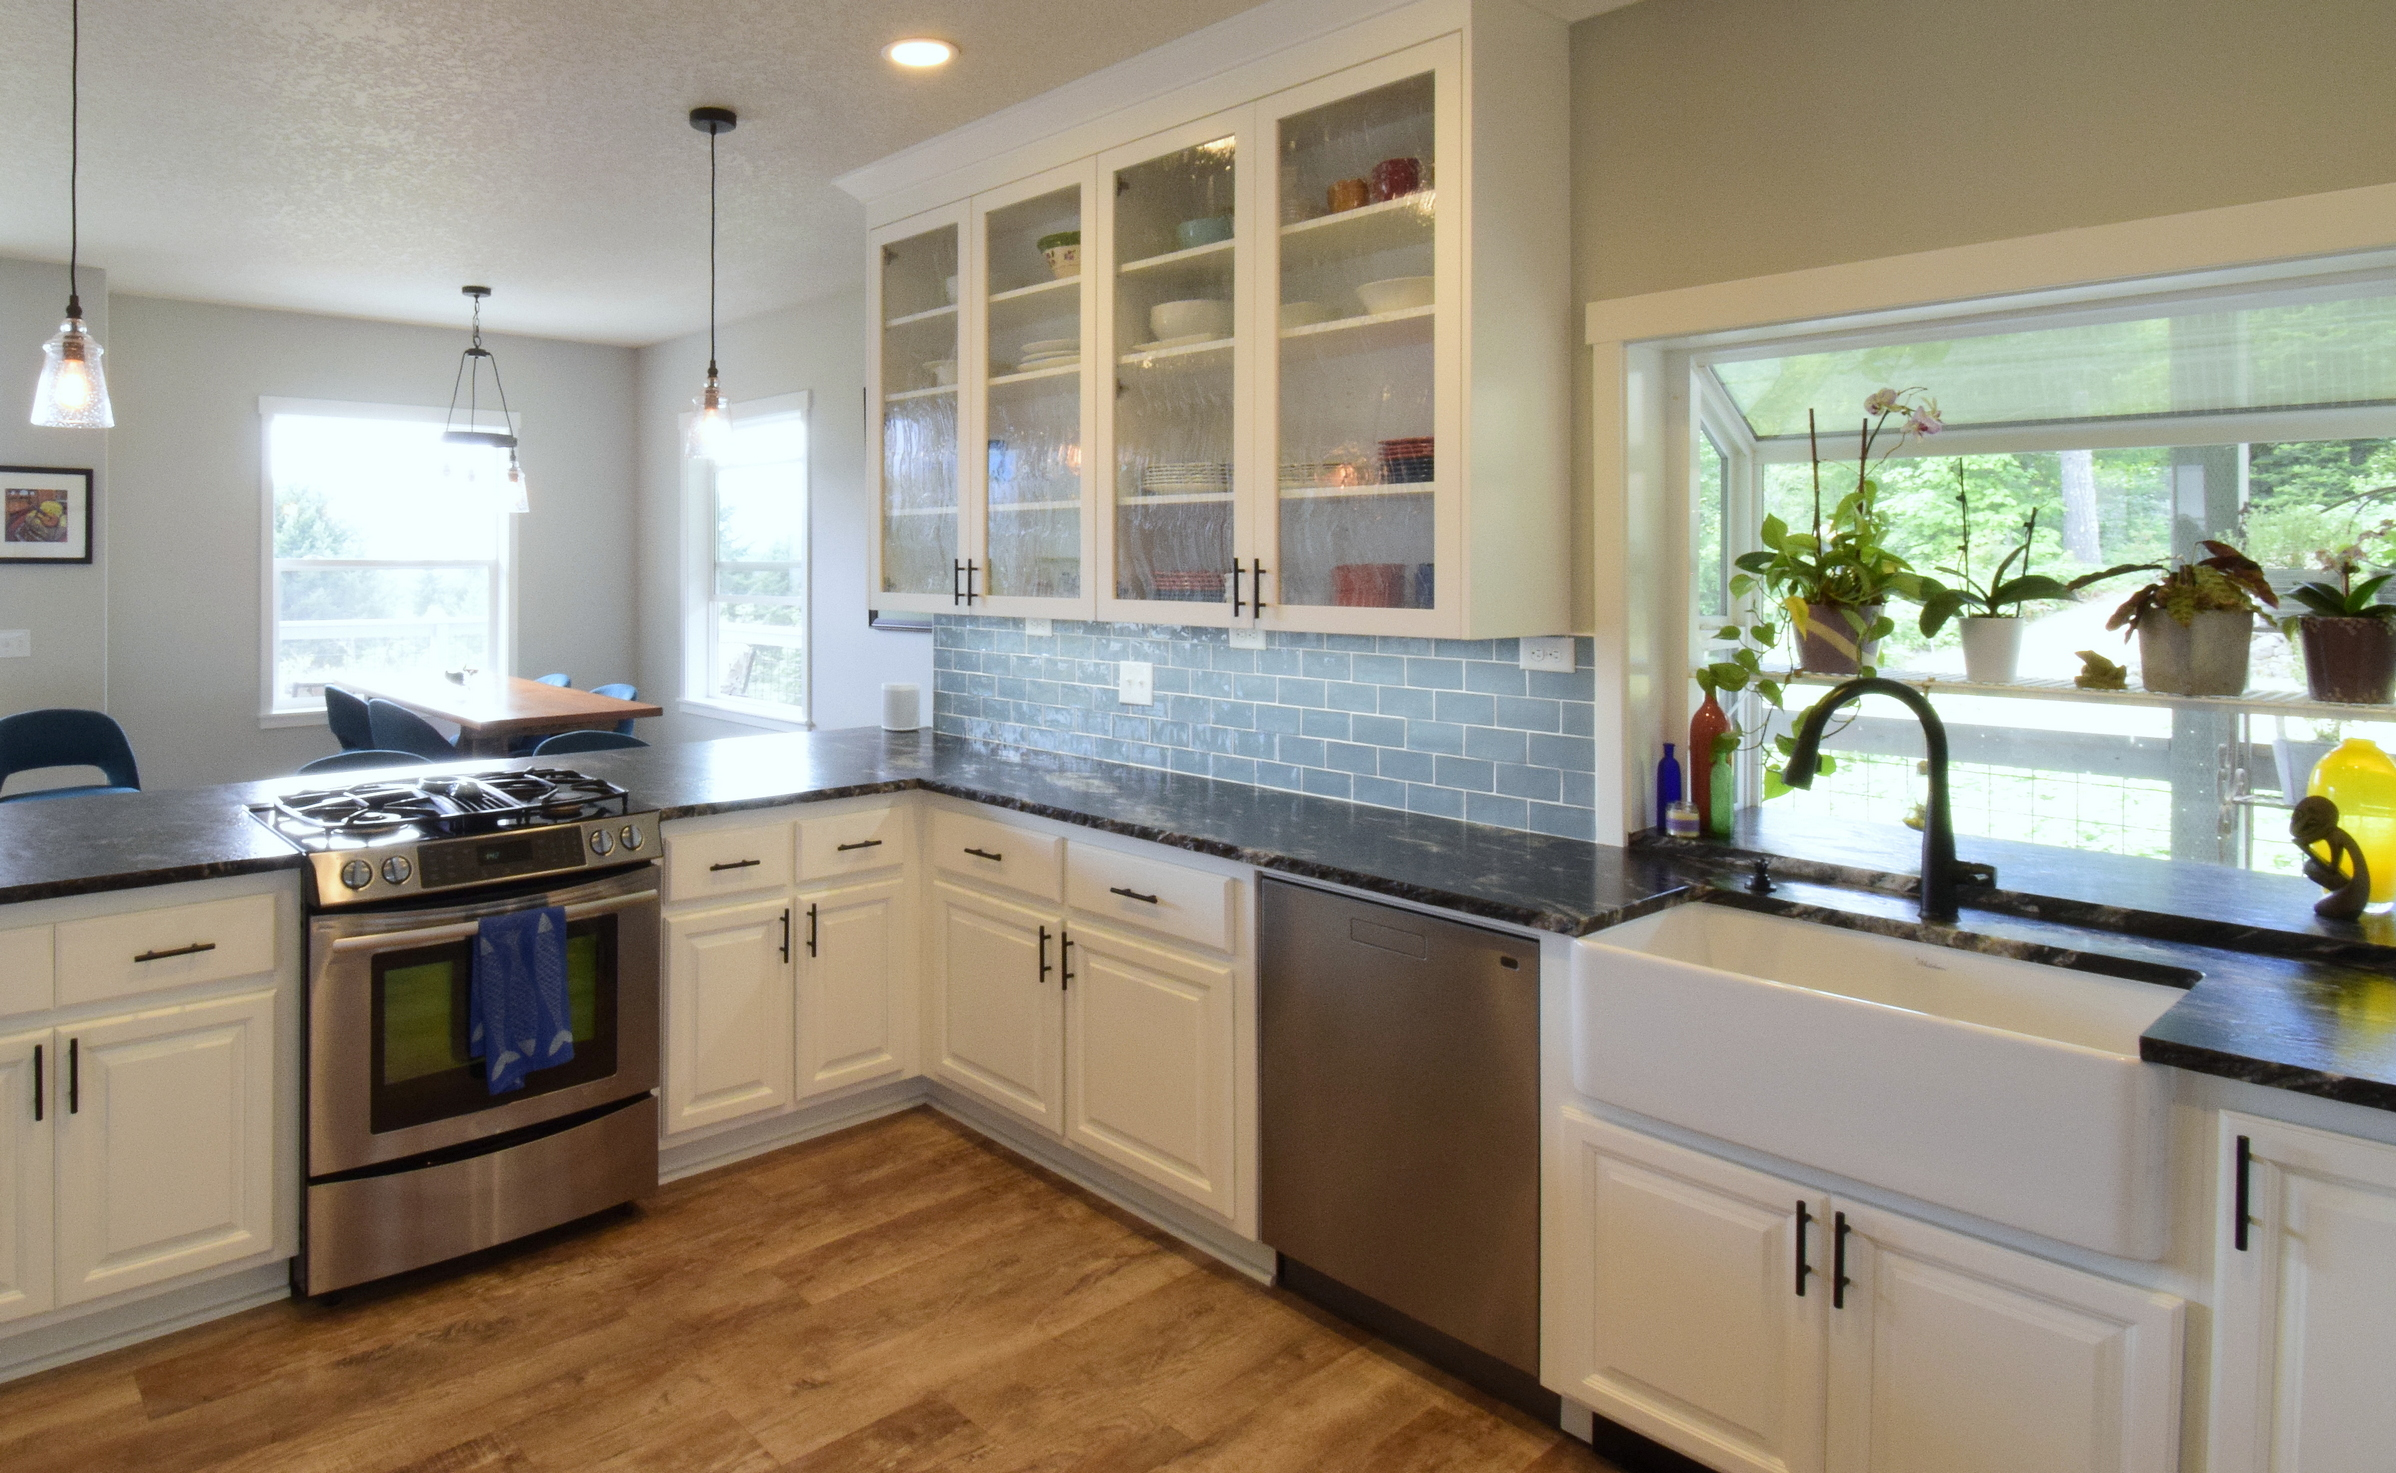 Design, Build, and Remodel - Full-service building and remodeling. Licensed in Washington and Oregon. We specialize in design, permits, and construction for building from the ground up new homes and remodeling existing homes. Including kitchens, bathrooms and basements. Our experienced design/build professionals will guide you through a construction process that is as stress free as possible, while delivering your remodel on time and on budget.